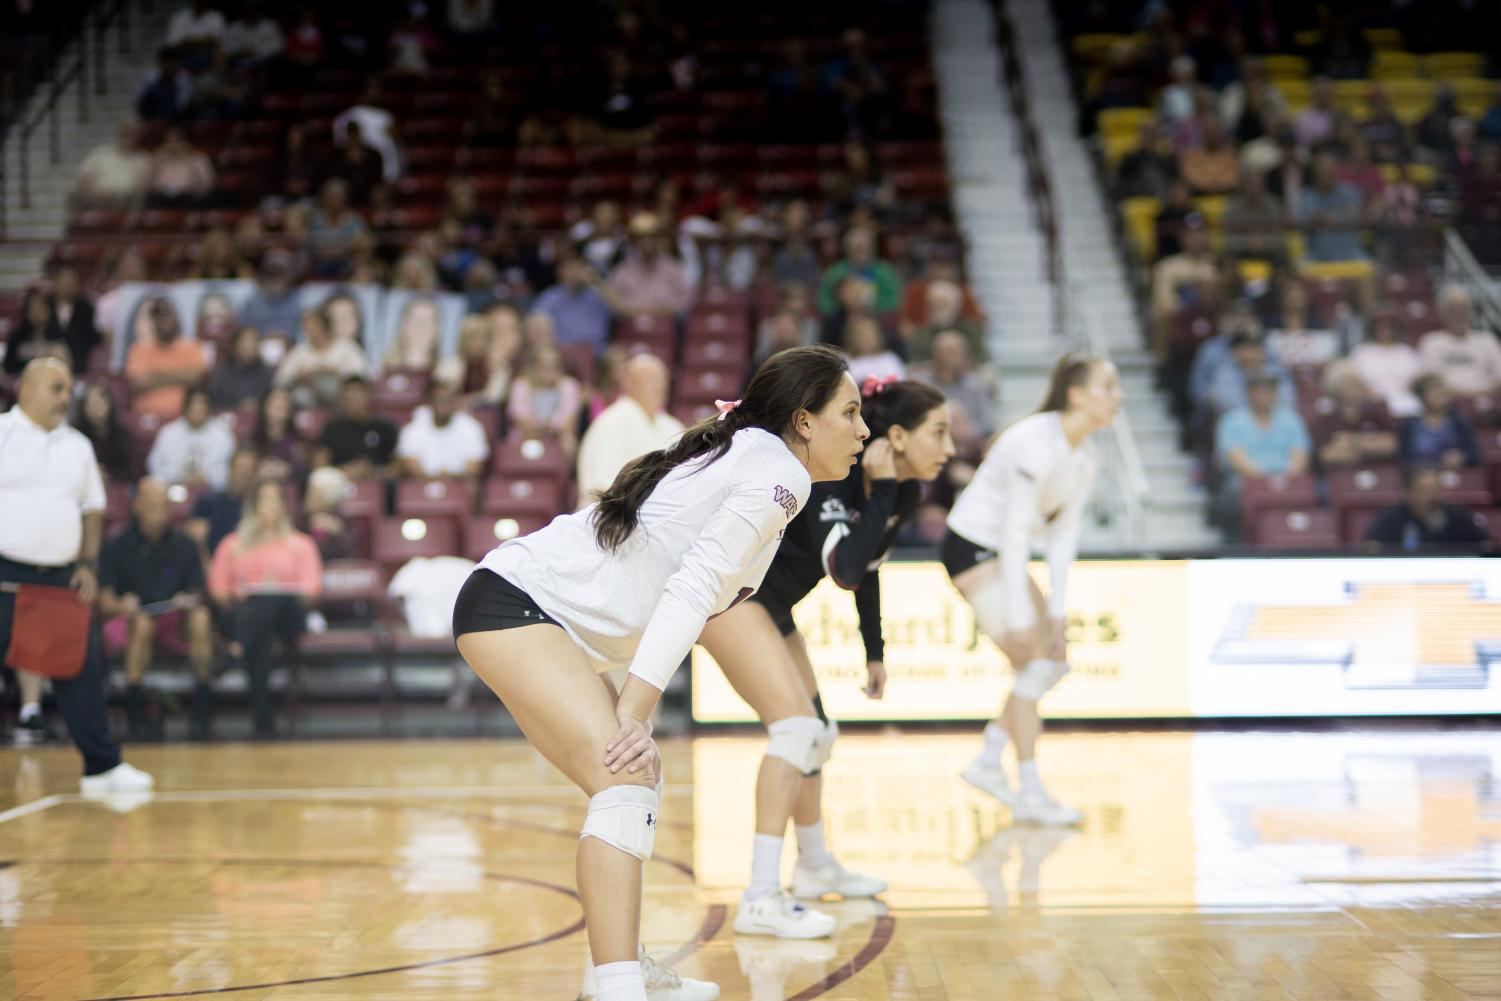 The Aggies' season ends in Provo, Utah in the first round of the NCAA Tournament against BYU.